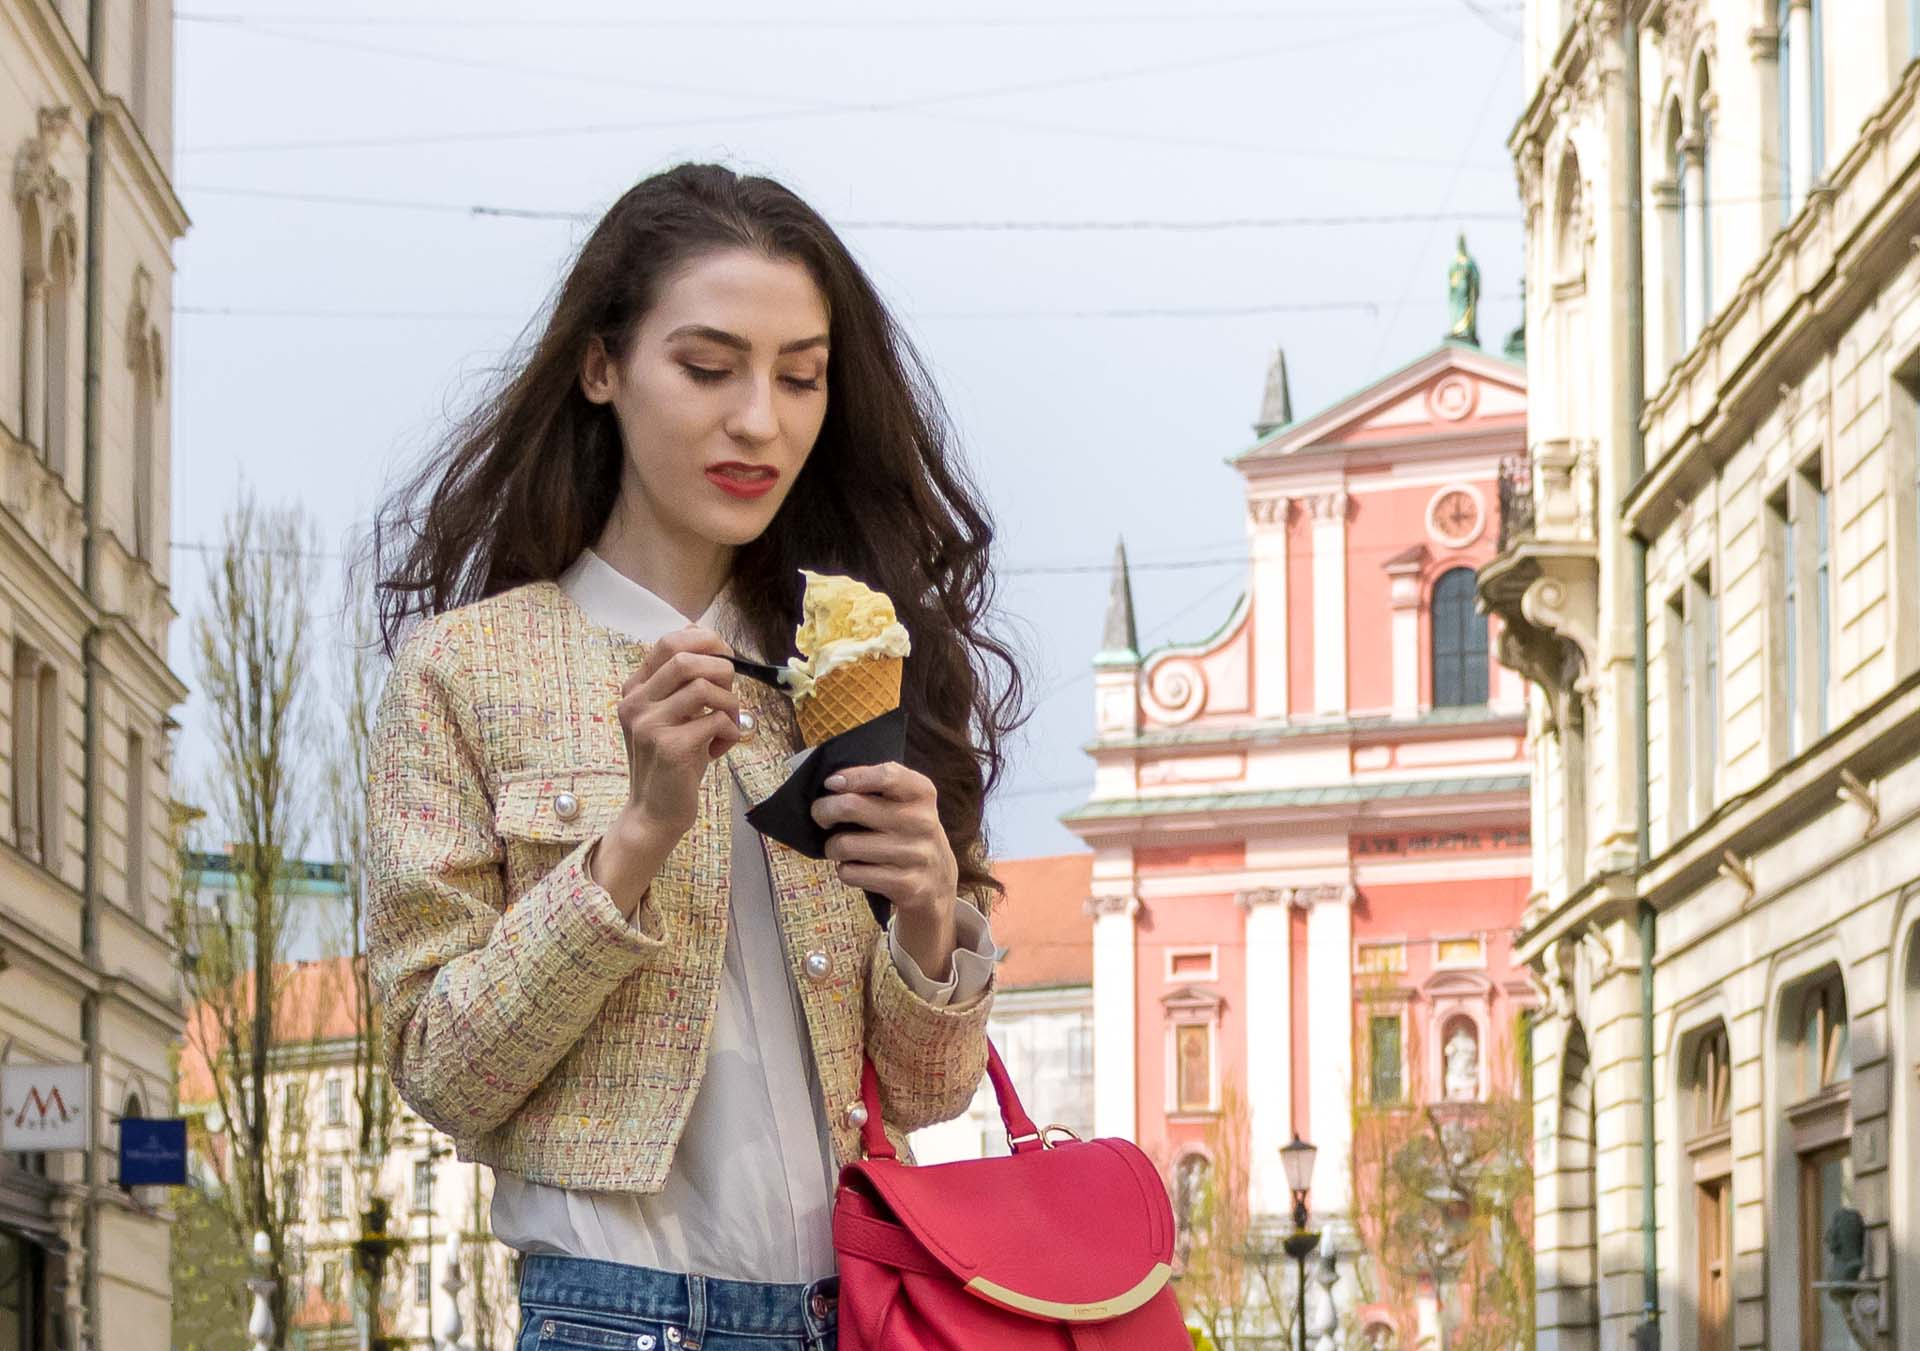 Veronika Lipar Fashion Blogger of Brunette from Wall Street wearing chic casual everyday spring outfit, the yellow tweed jacket from Storets, blue jeans from A.P.C., pink top handle bag and organza white shirt on the street eating ice cream